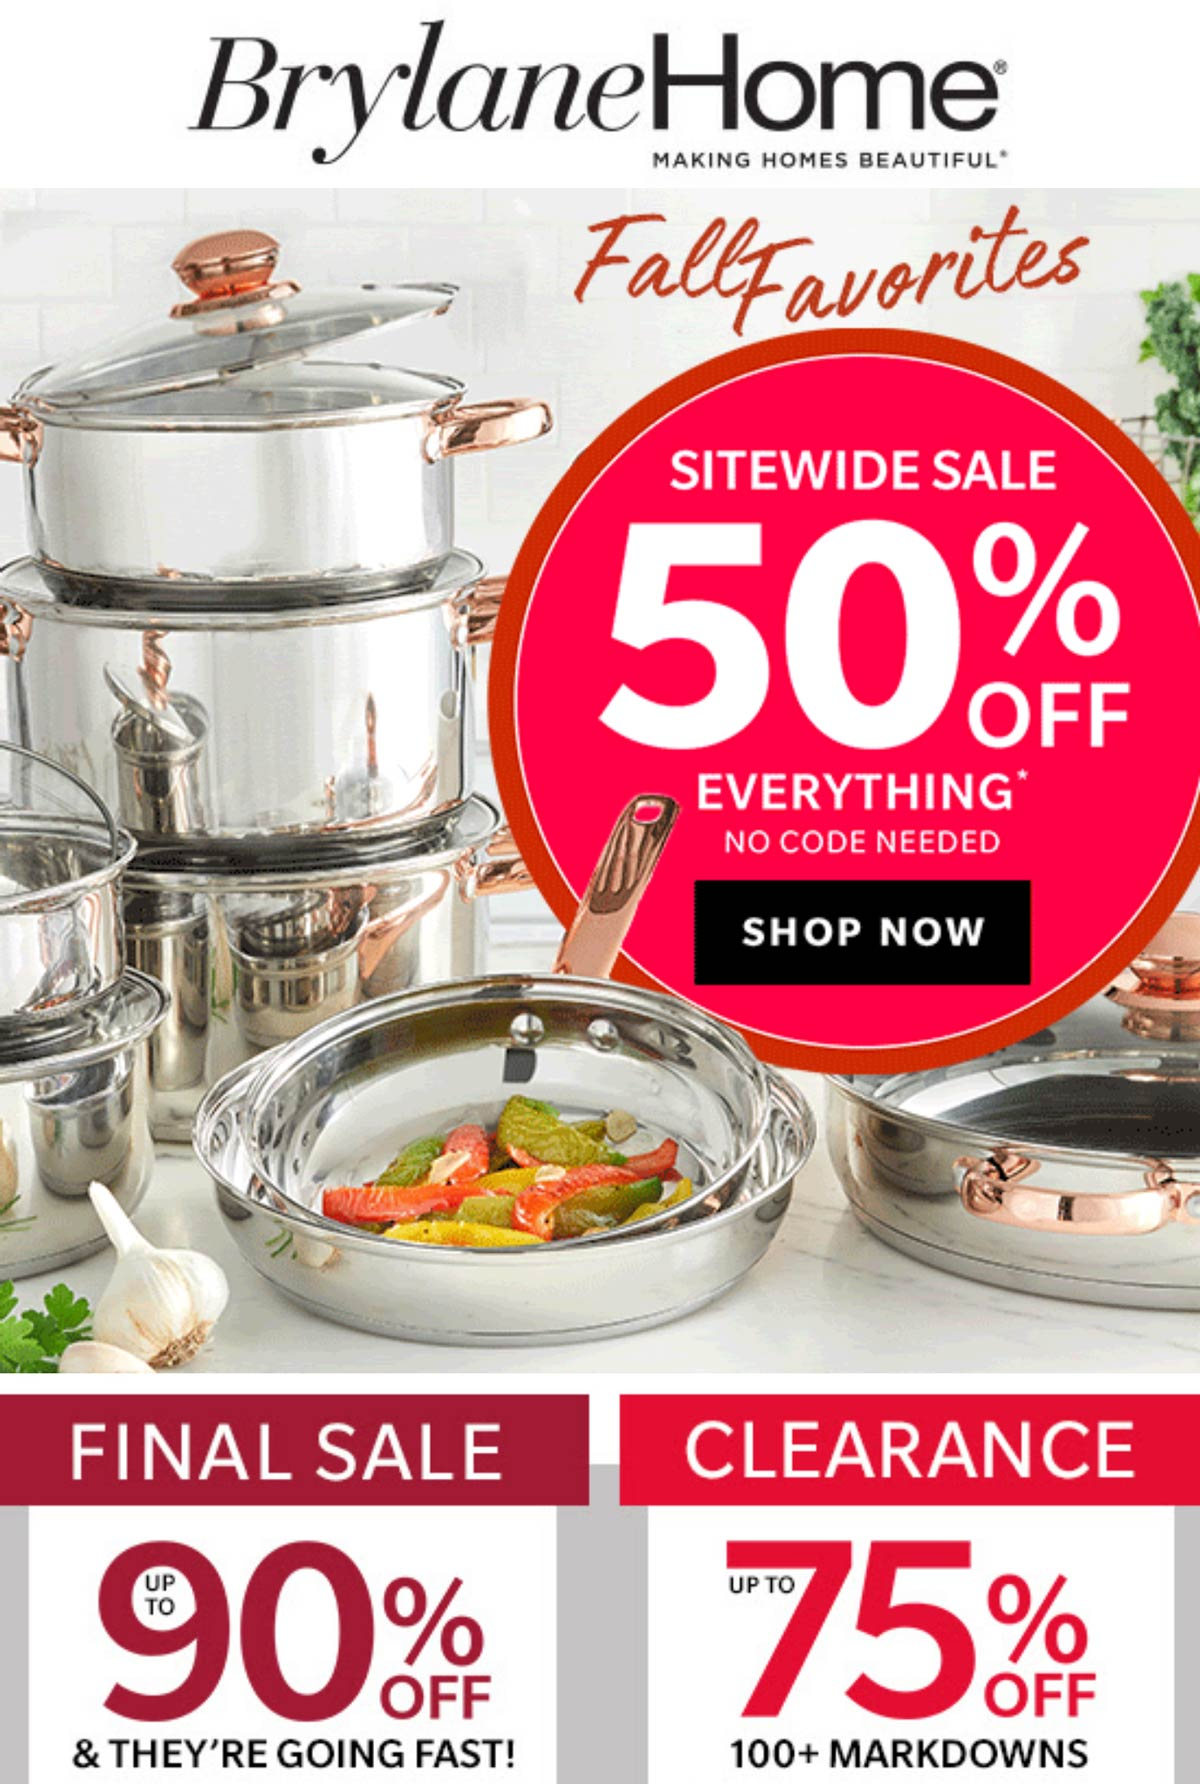 Brylane Home stores Coupon  50% off everything at Brylane Home catalog #brylanehome